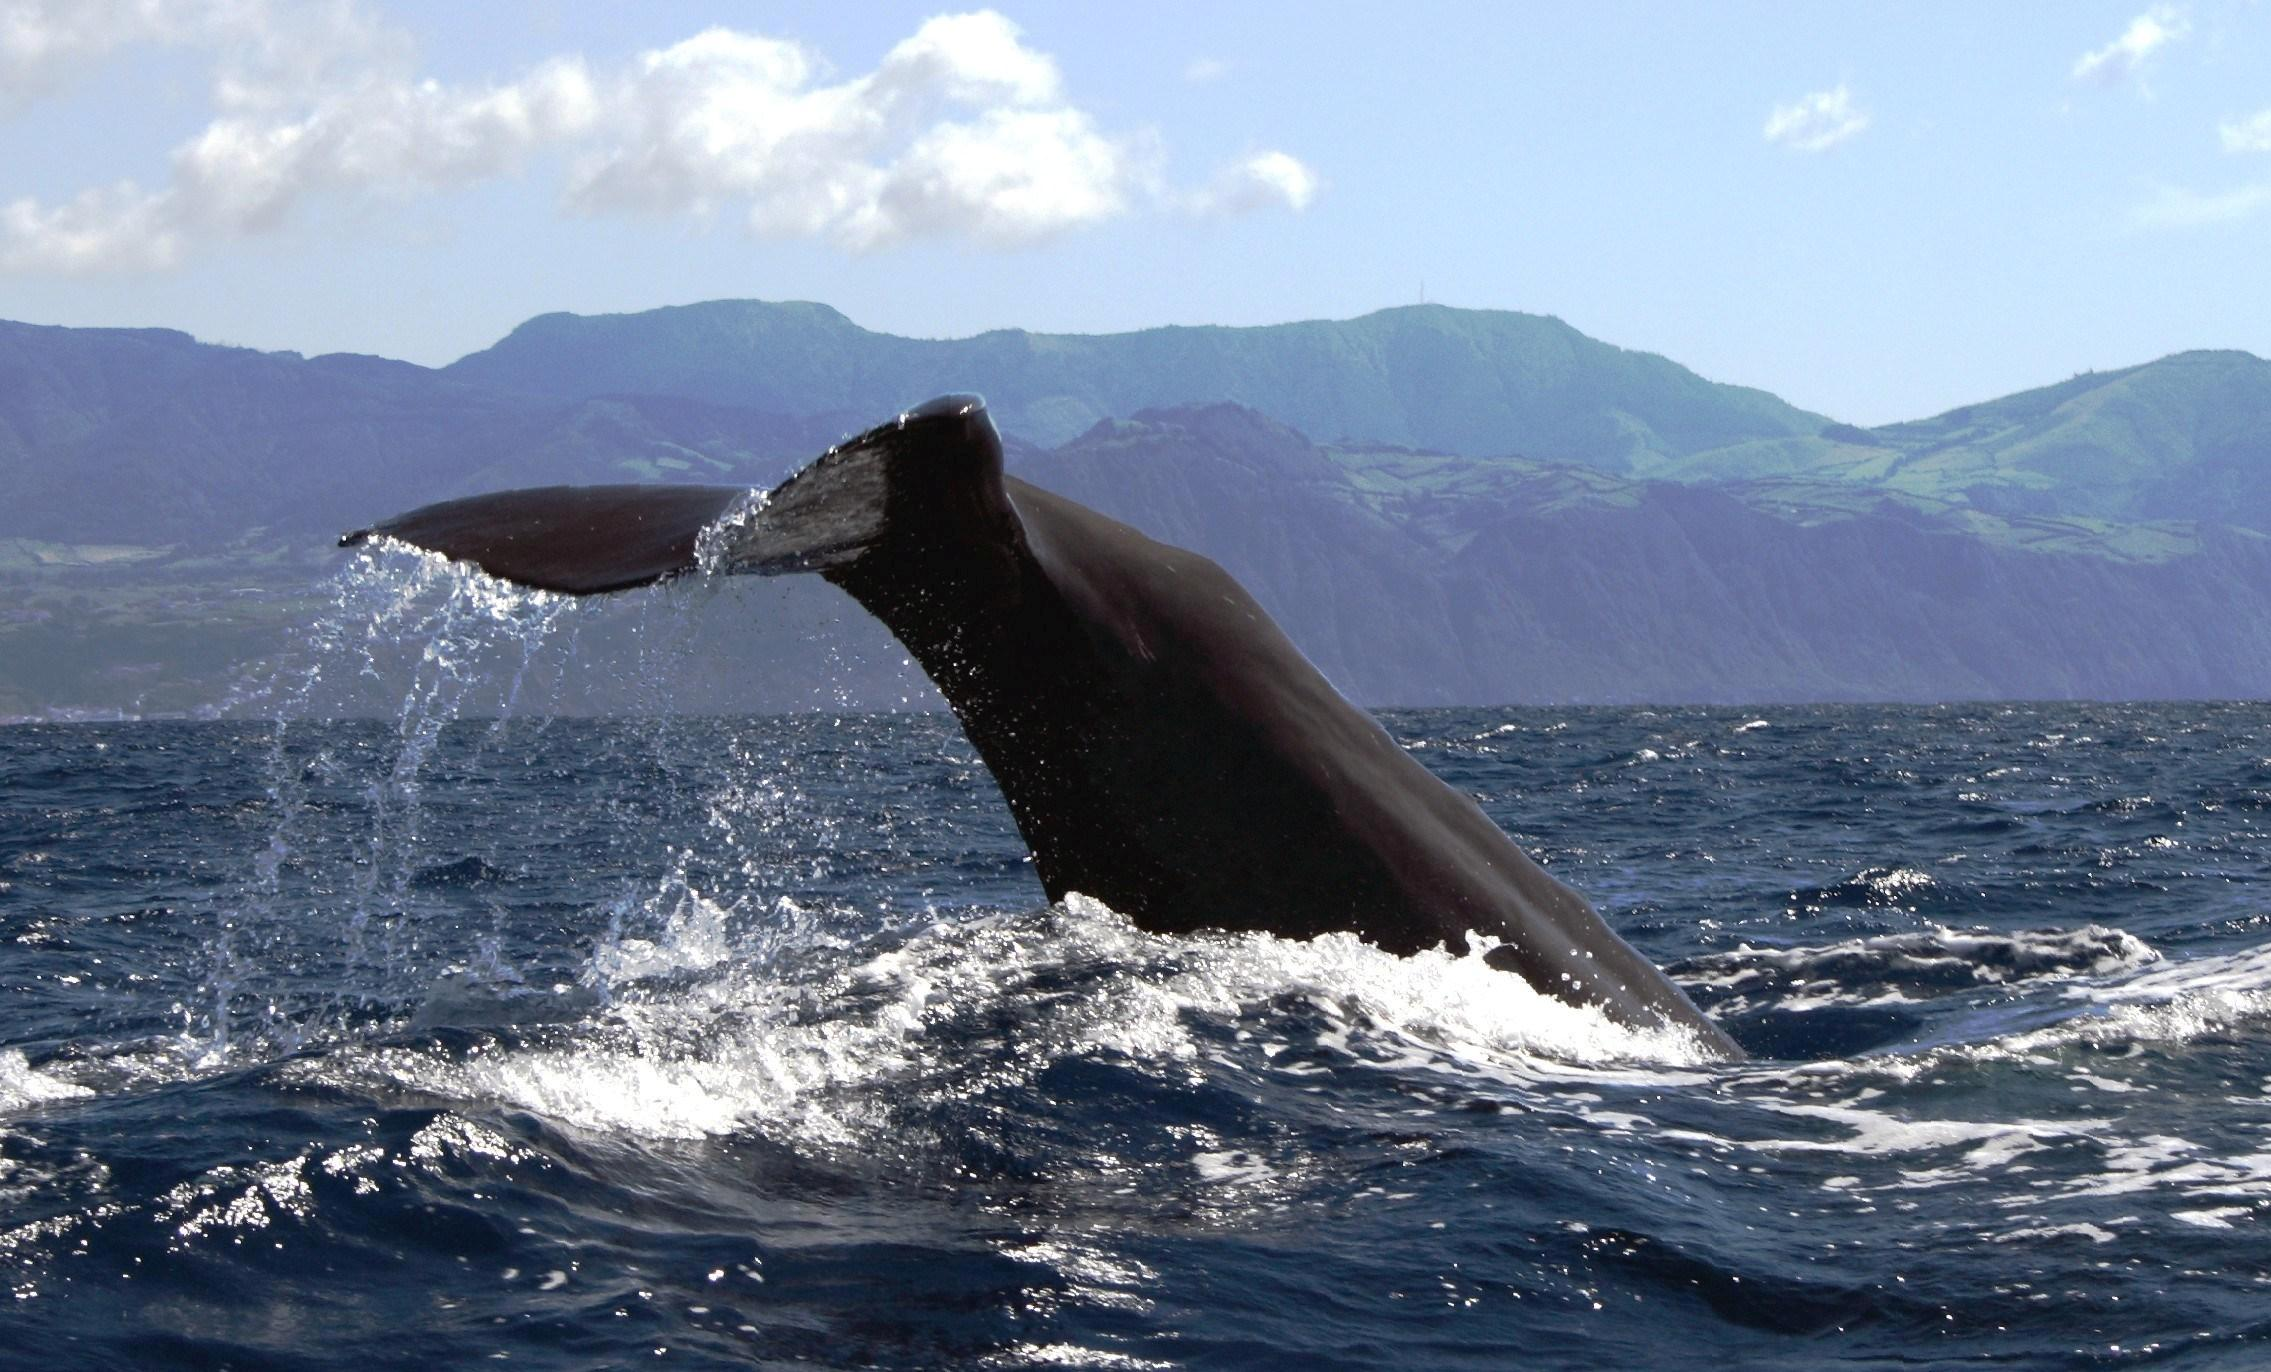 sperm whale tale in Azores islands, Portugal